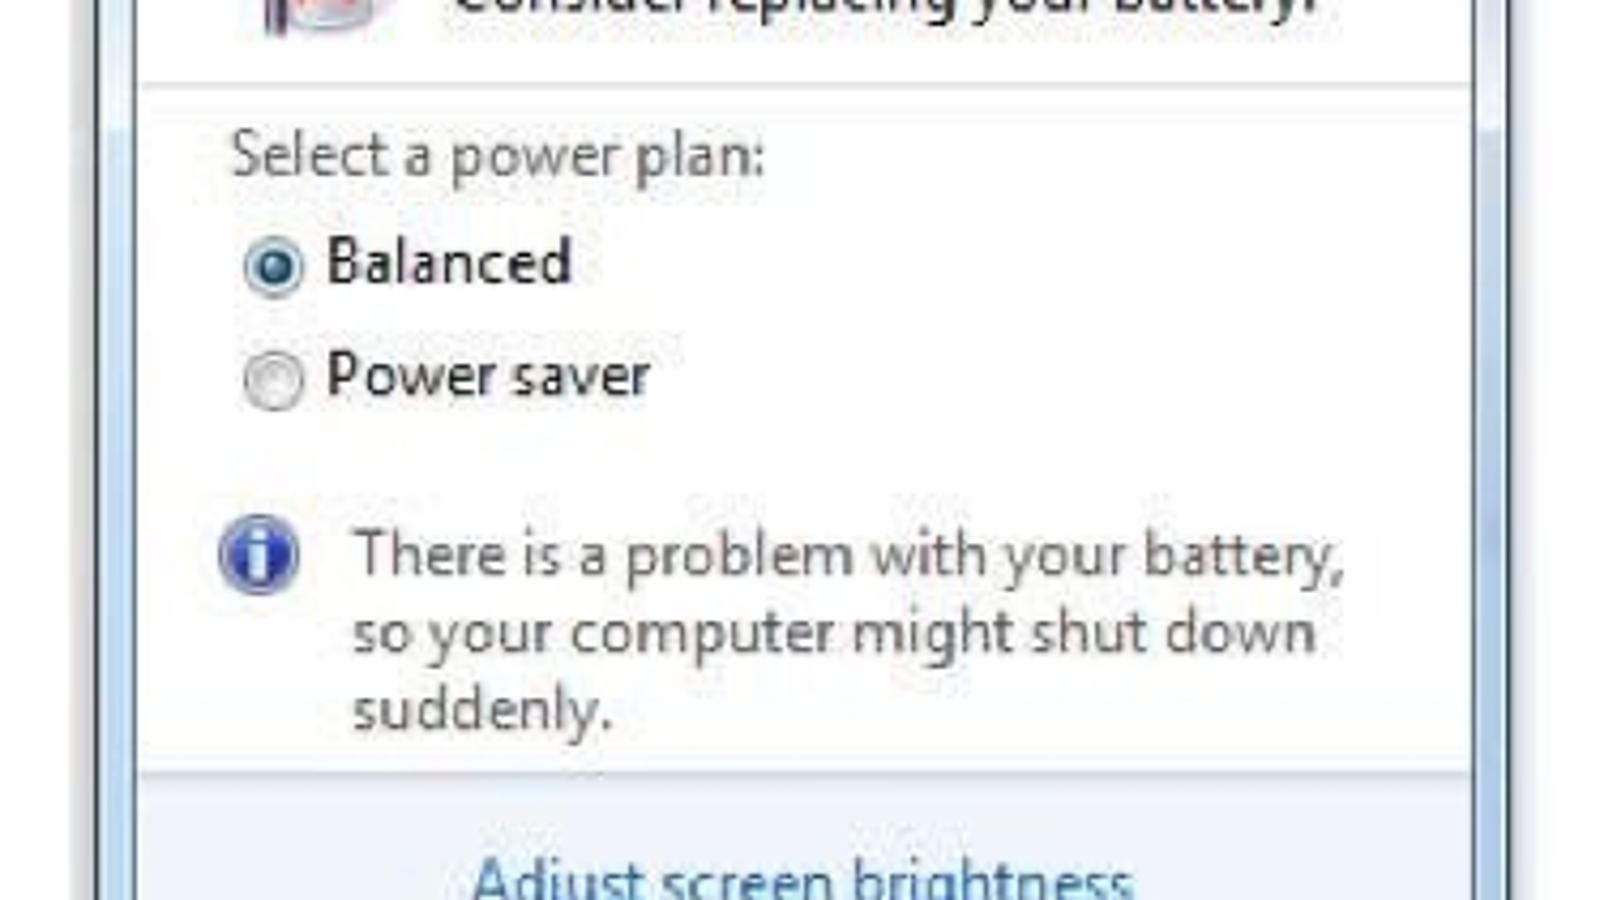 Microsoft Blames Your Laptop—Not Windows 7—For Battery Issues